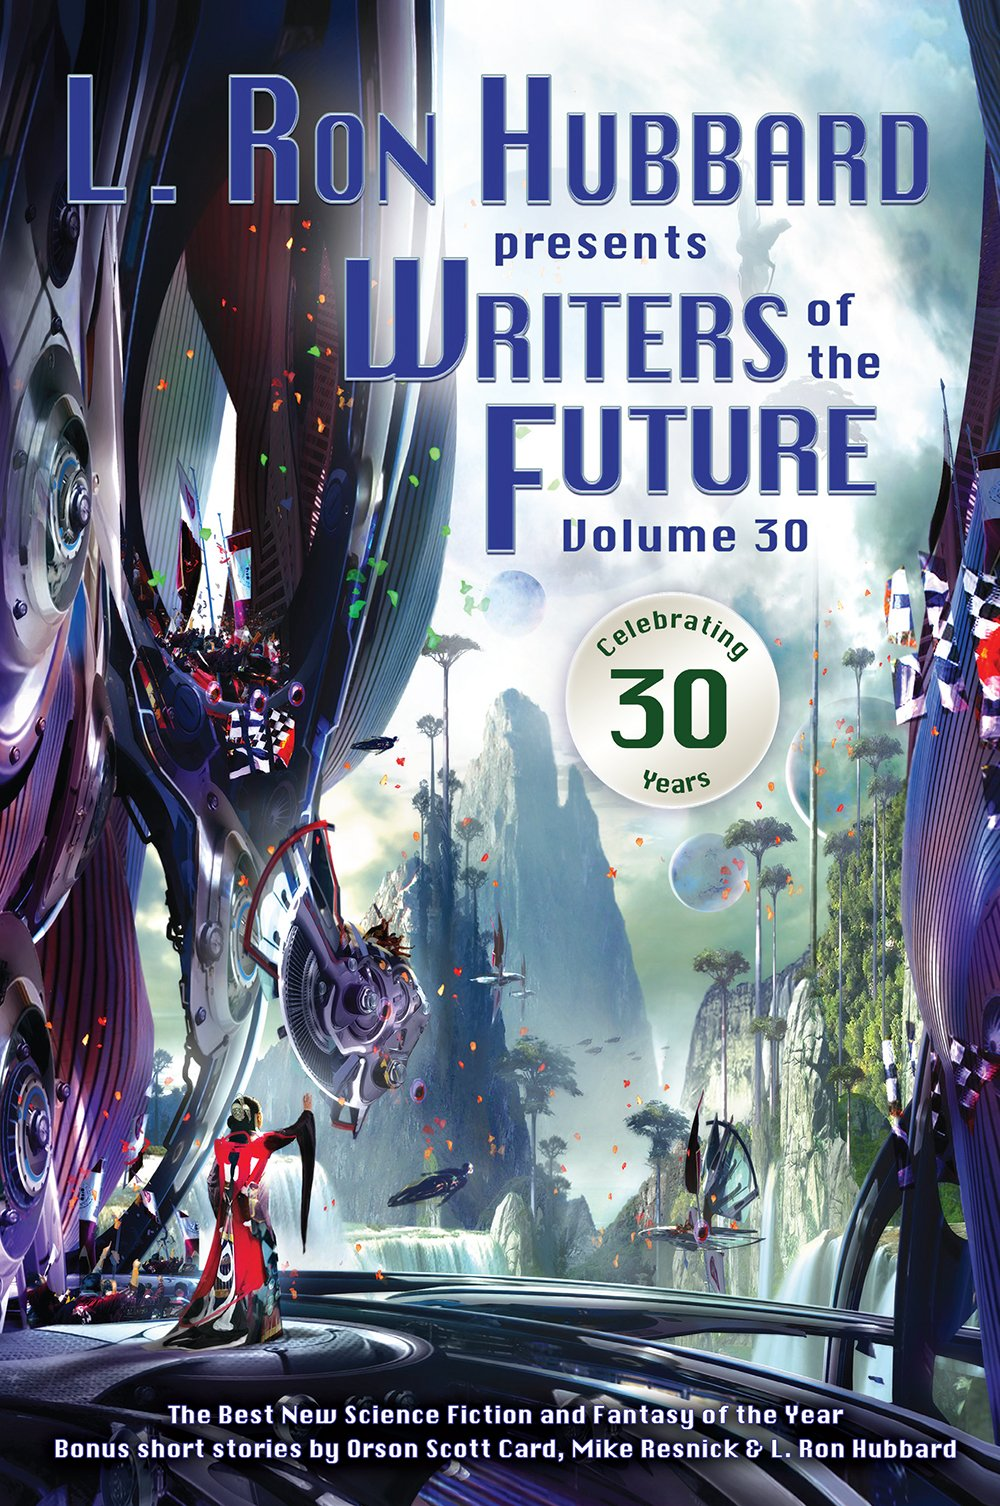 writers of the future volume 30 the best new science fiction and writers of the future volume 30 the best new science fiction and fantasy of the year l ron hubbard presents writers of the future l ron hubbard